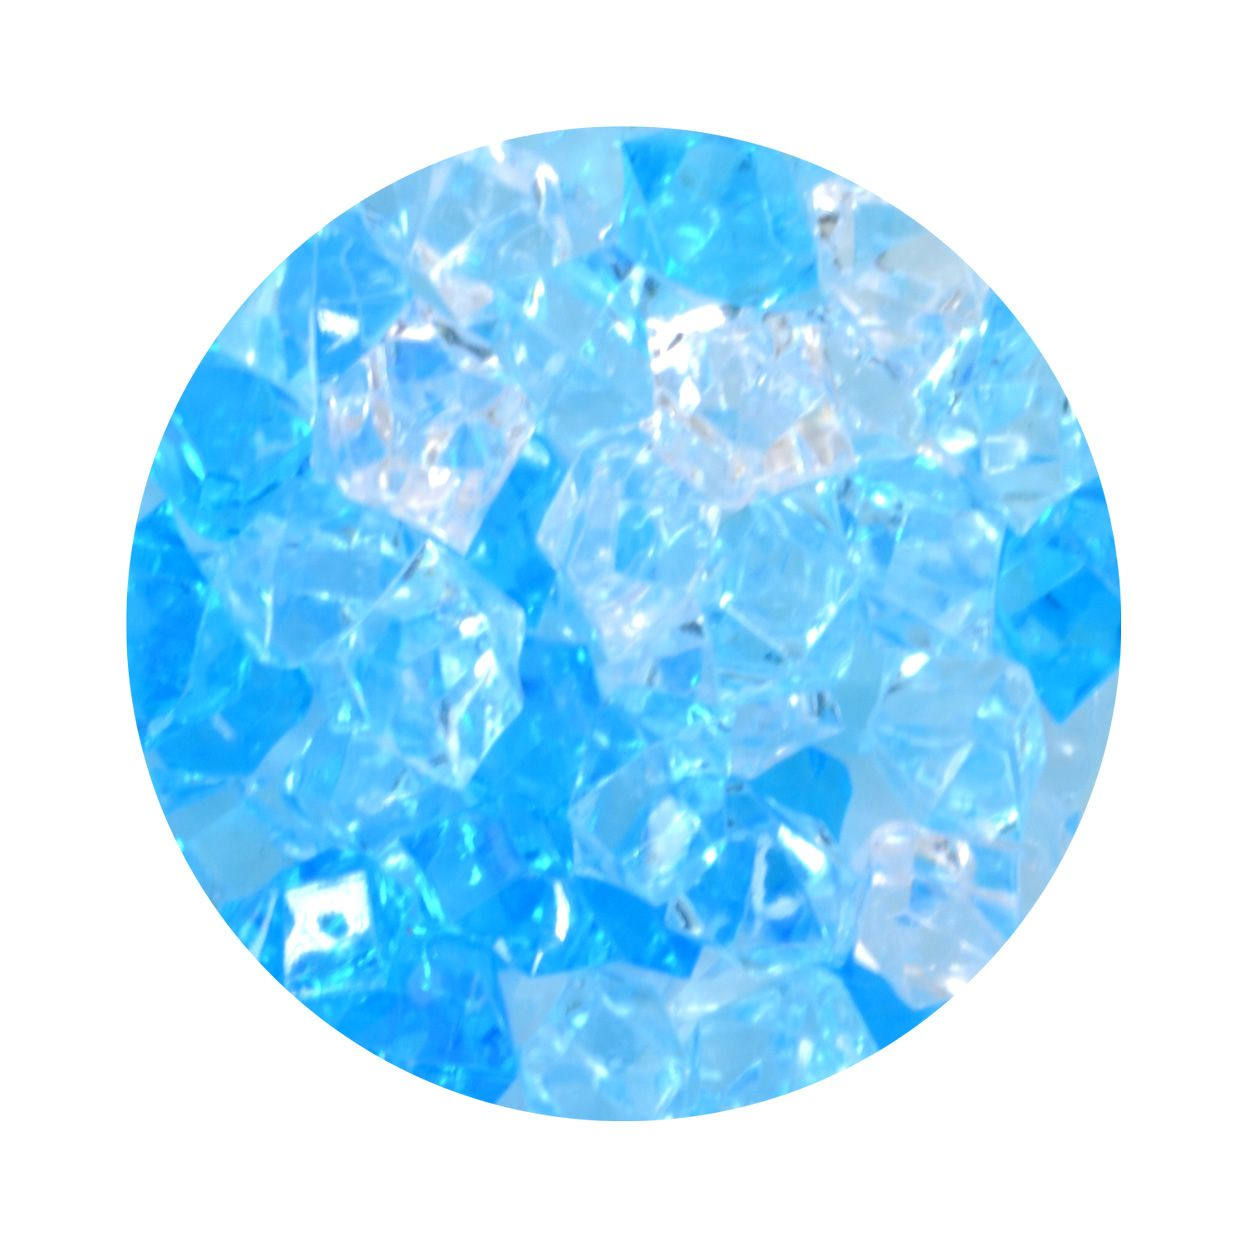 Aqua One Crystal Gems Acrylic Gravel - Blue Ice - 5 oz